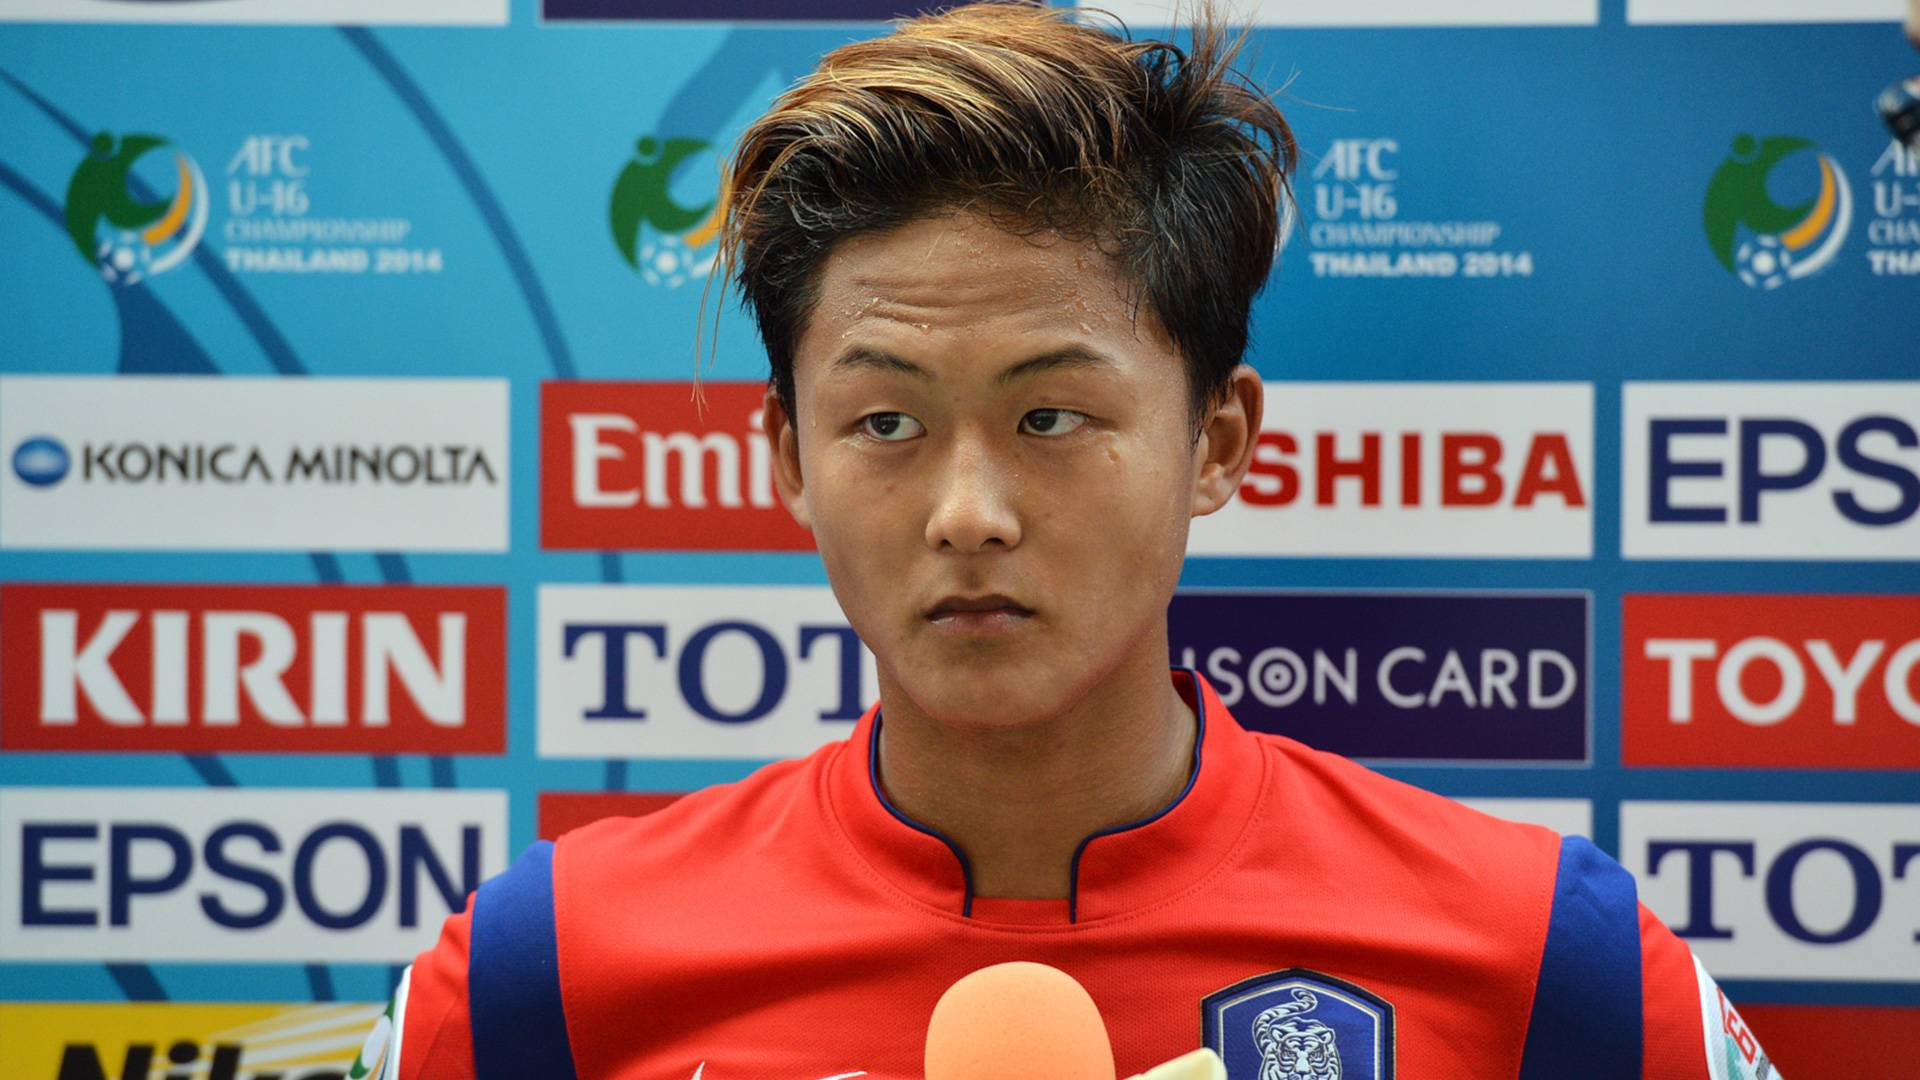 Hellas Verona in negotiation with Barcelona to sign Lee Seung-woo – Reports